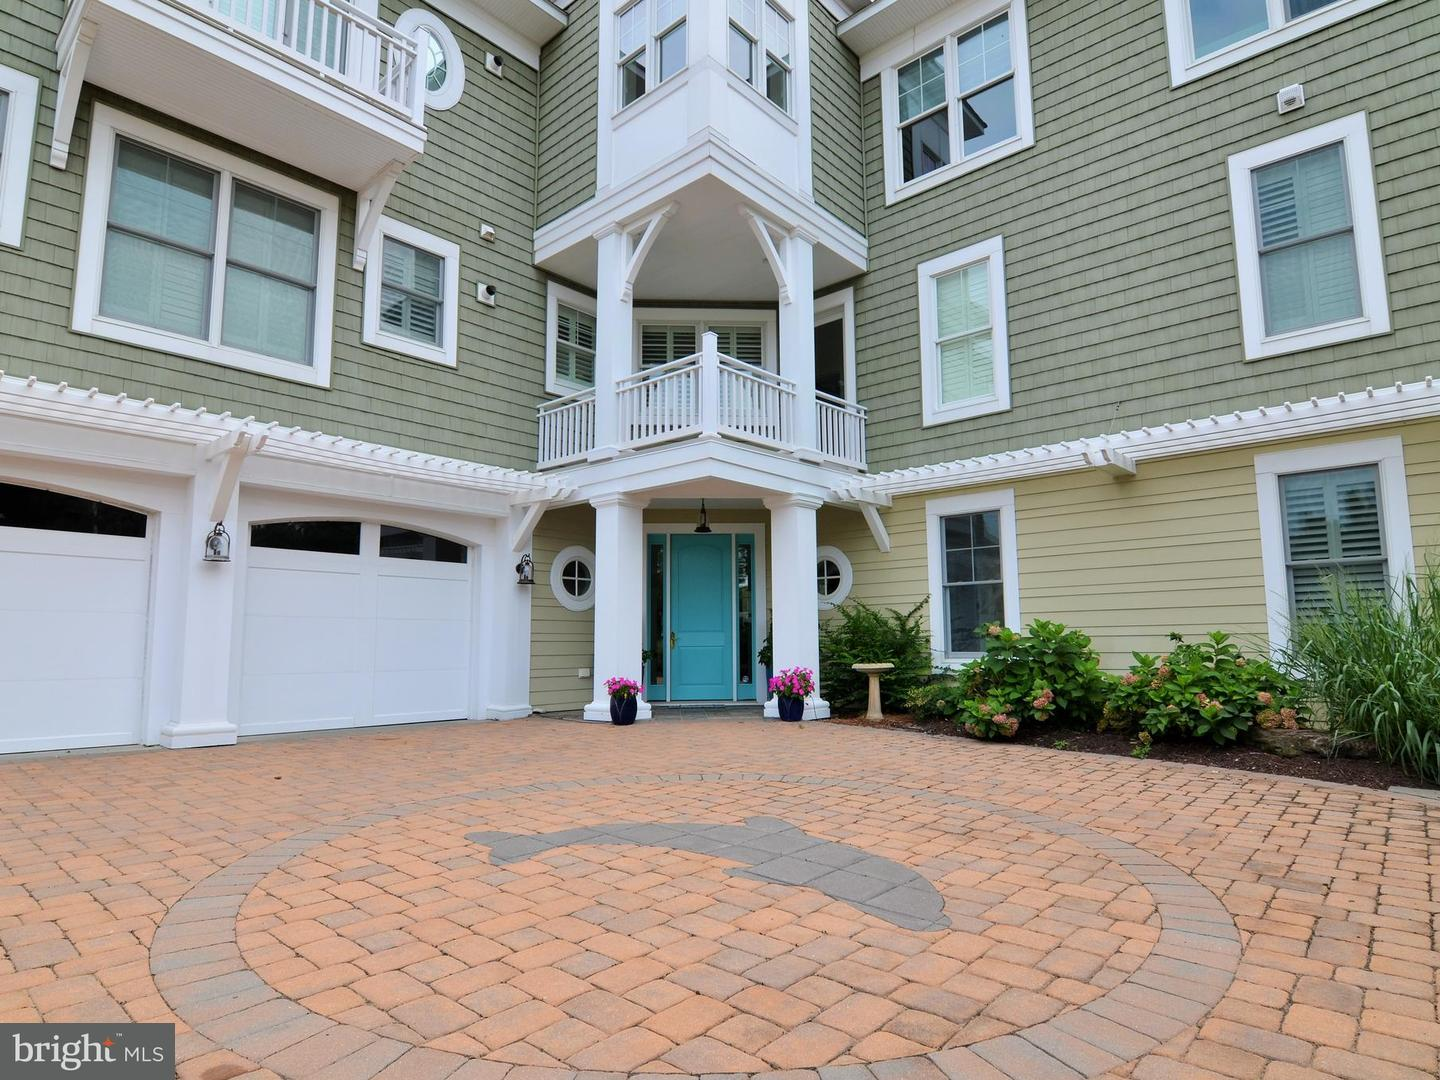 1002293530-300500805869-2018-09-25-15-08-24 31 Hall Ave | Rehoboth Beach, DE Real Estate For Sale | MLS# 1002293530  - 1st Choice Properties